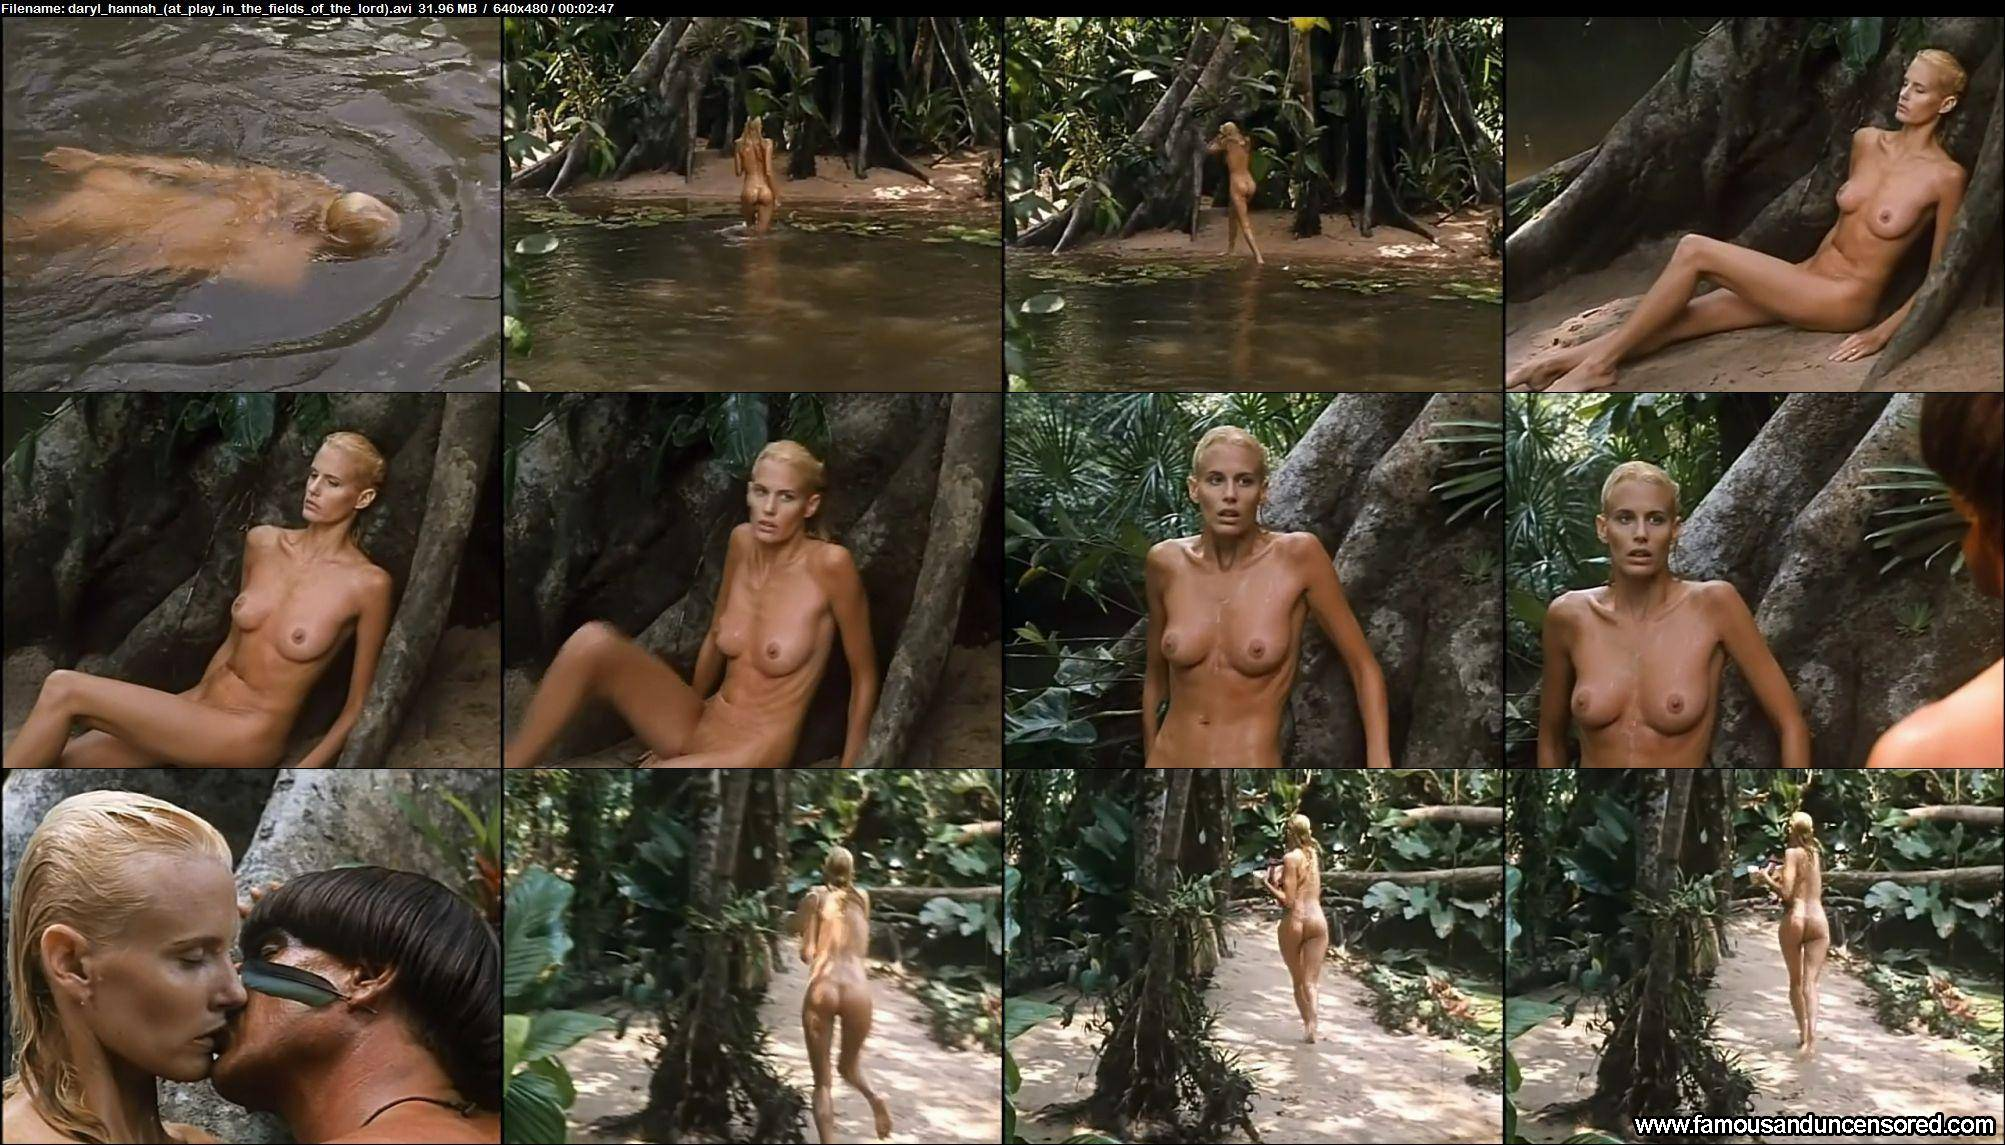 young-daryl-hannah-topless